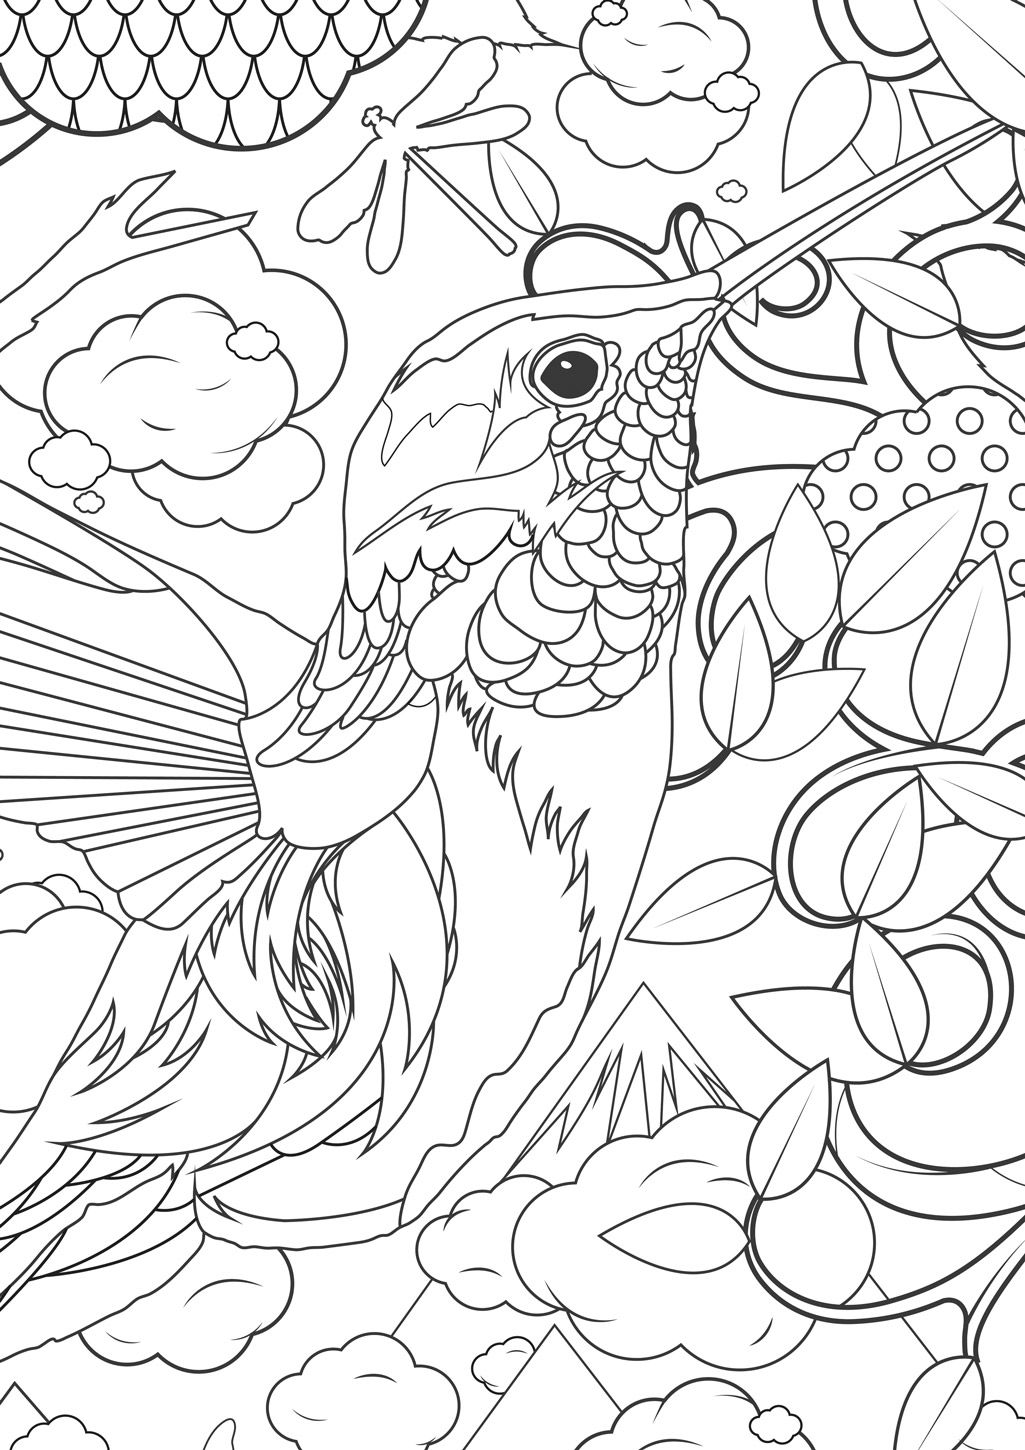 supersized colouring picture from kek amsterdam - Fun Printable Coloring Pages